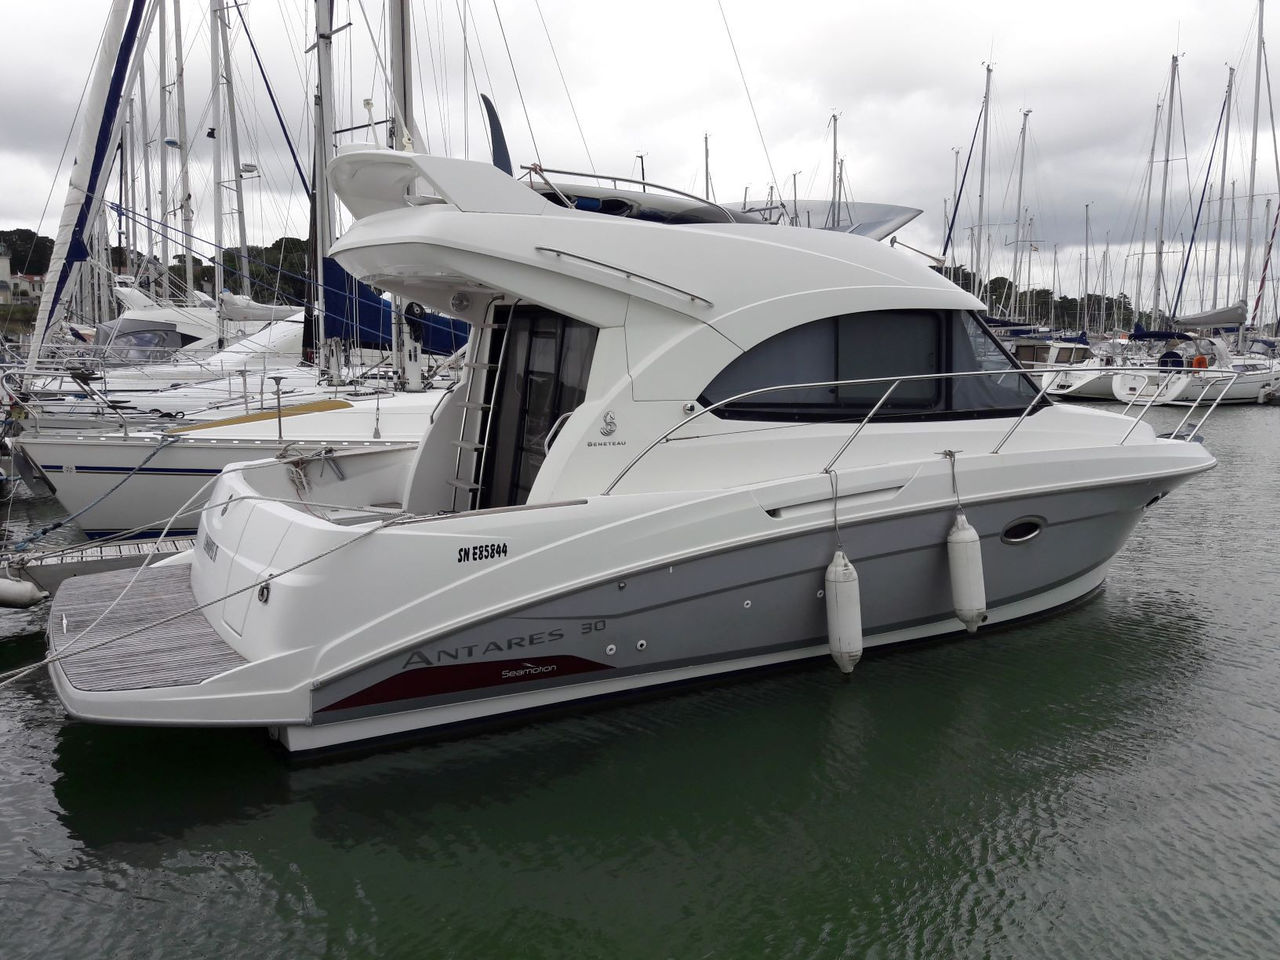 beneteau-antares-30-fly-huge-353959076c5bf8be